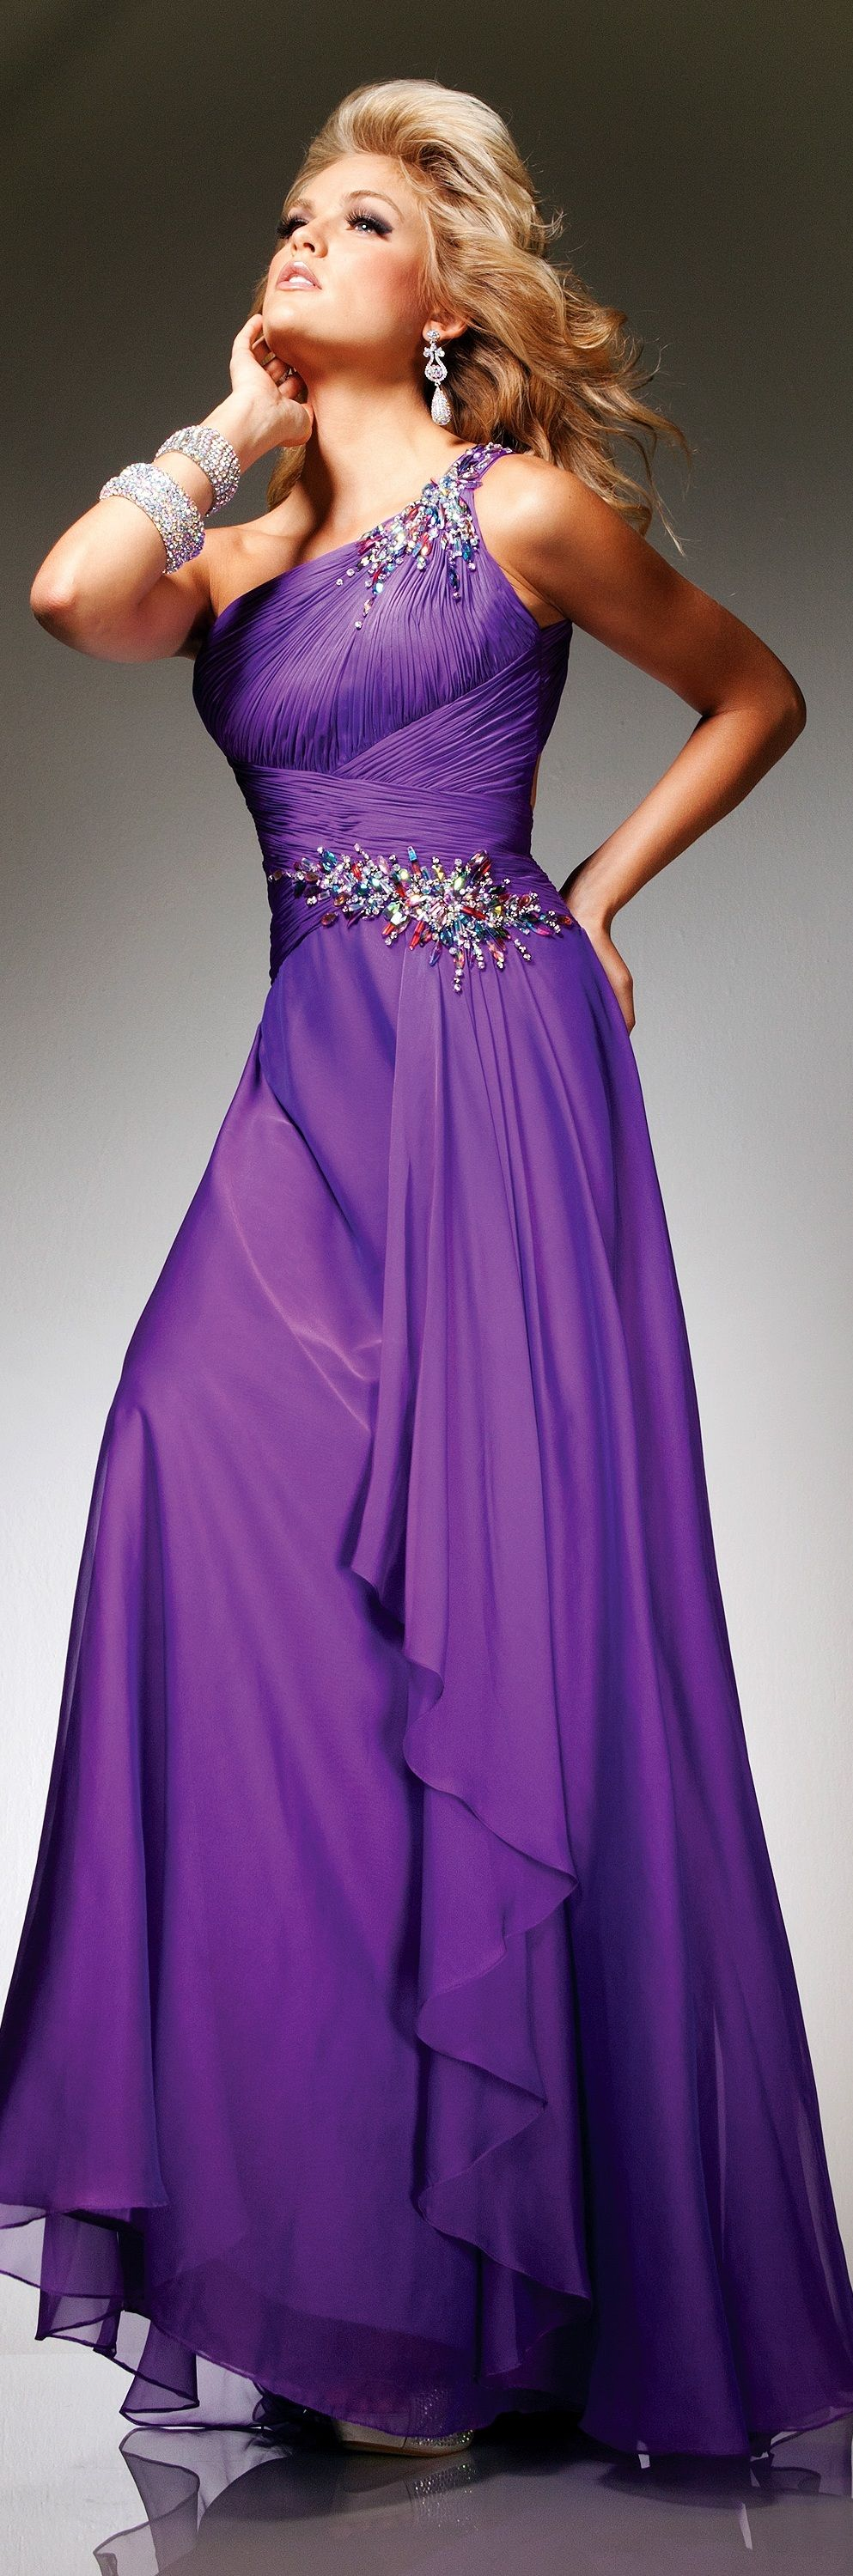 Tony Bowls | Evening/Prom Dresses | Pinterest | Vestiditos, Vestidos ...